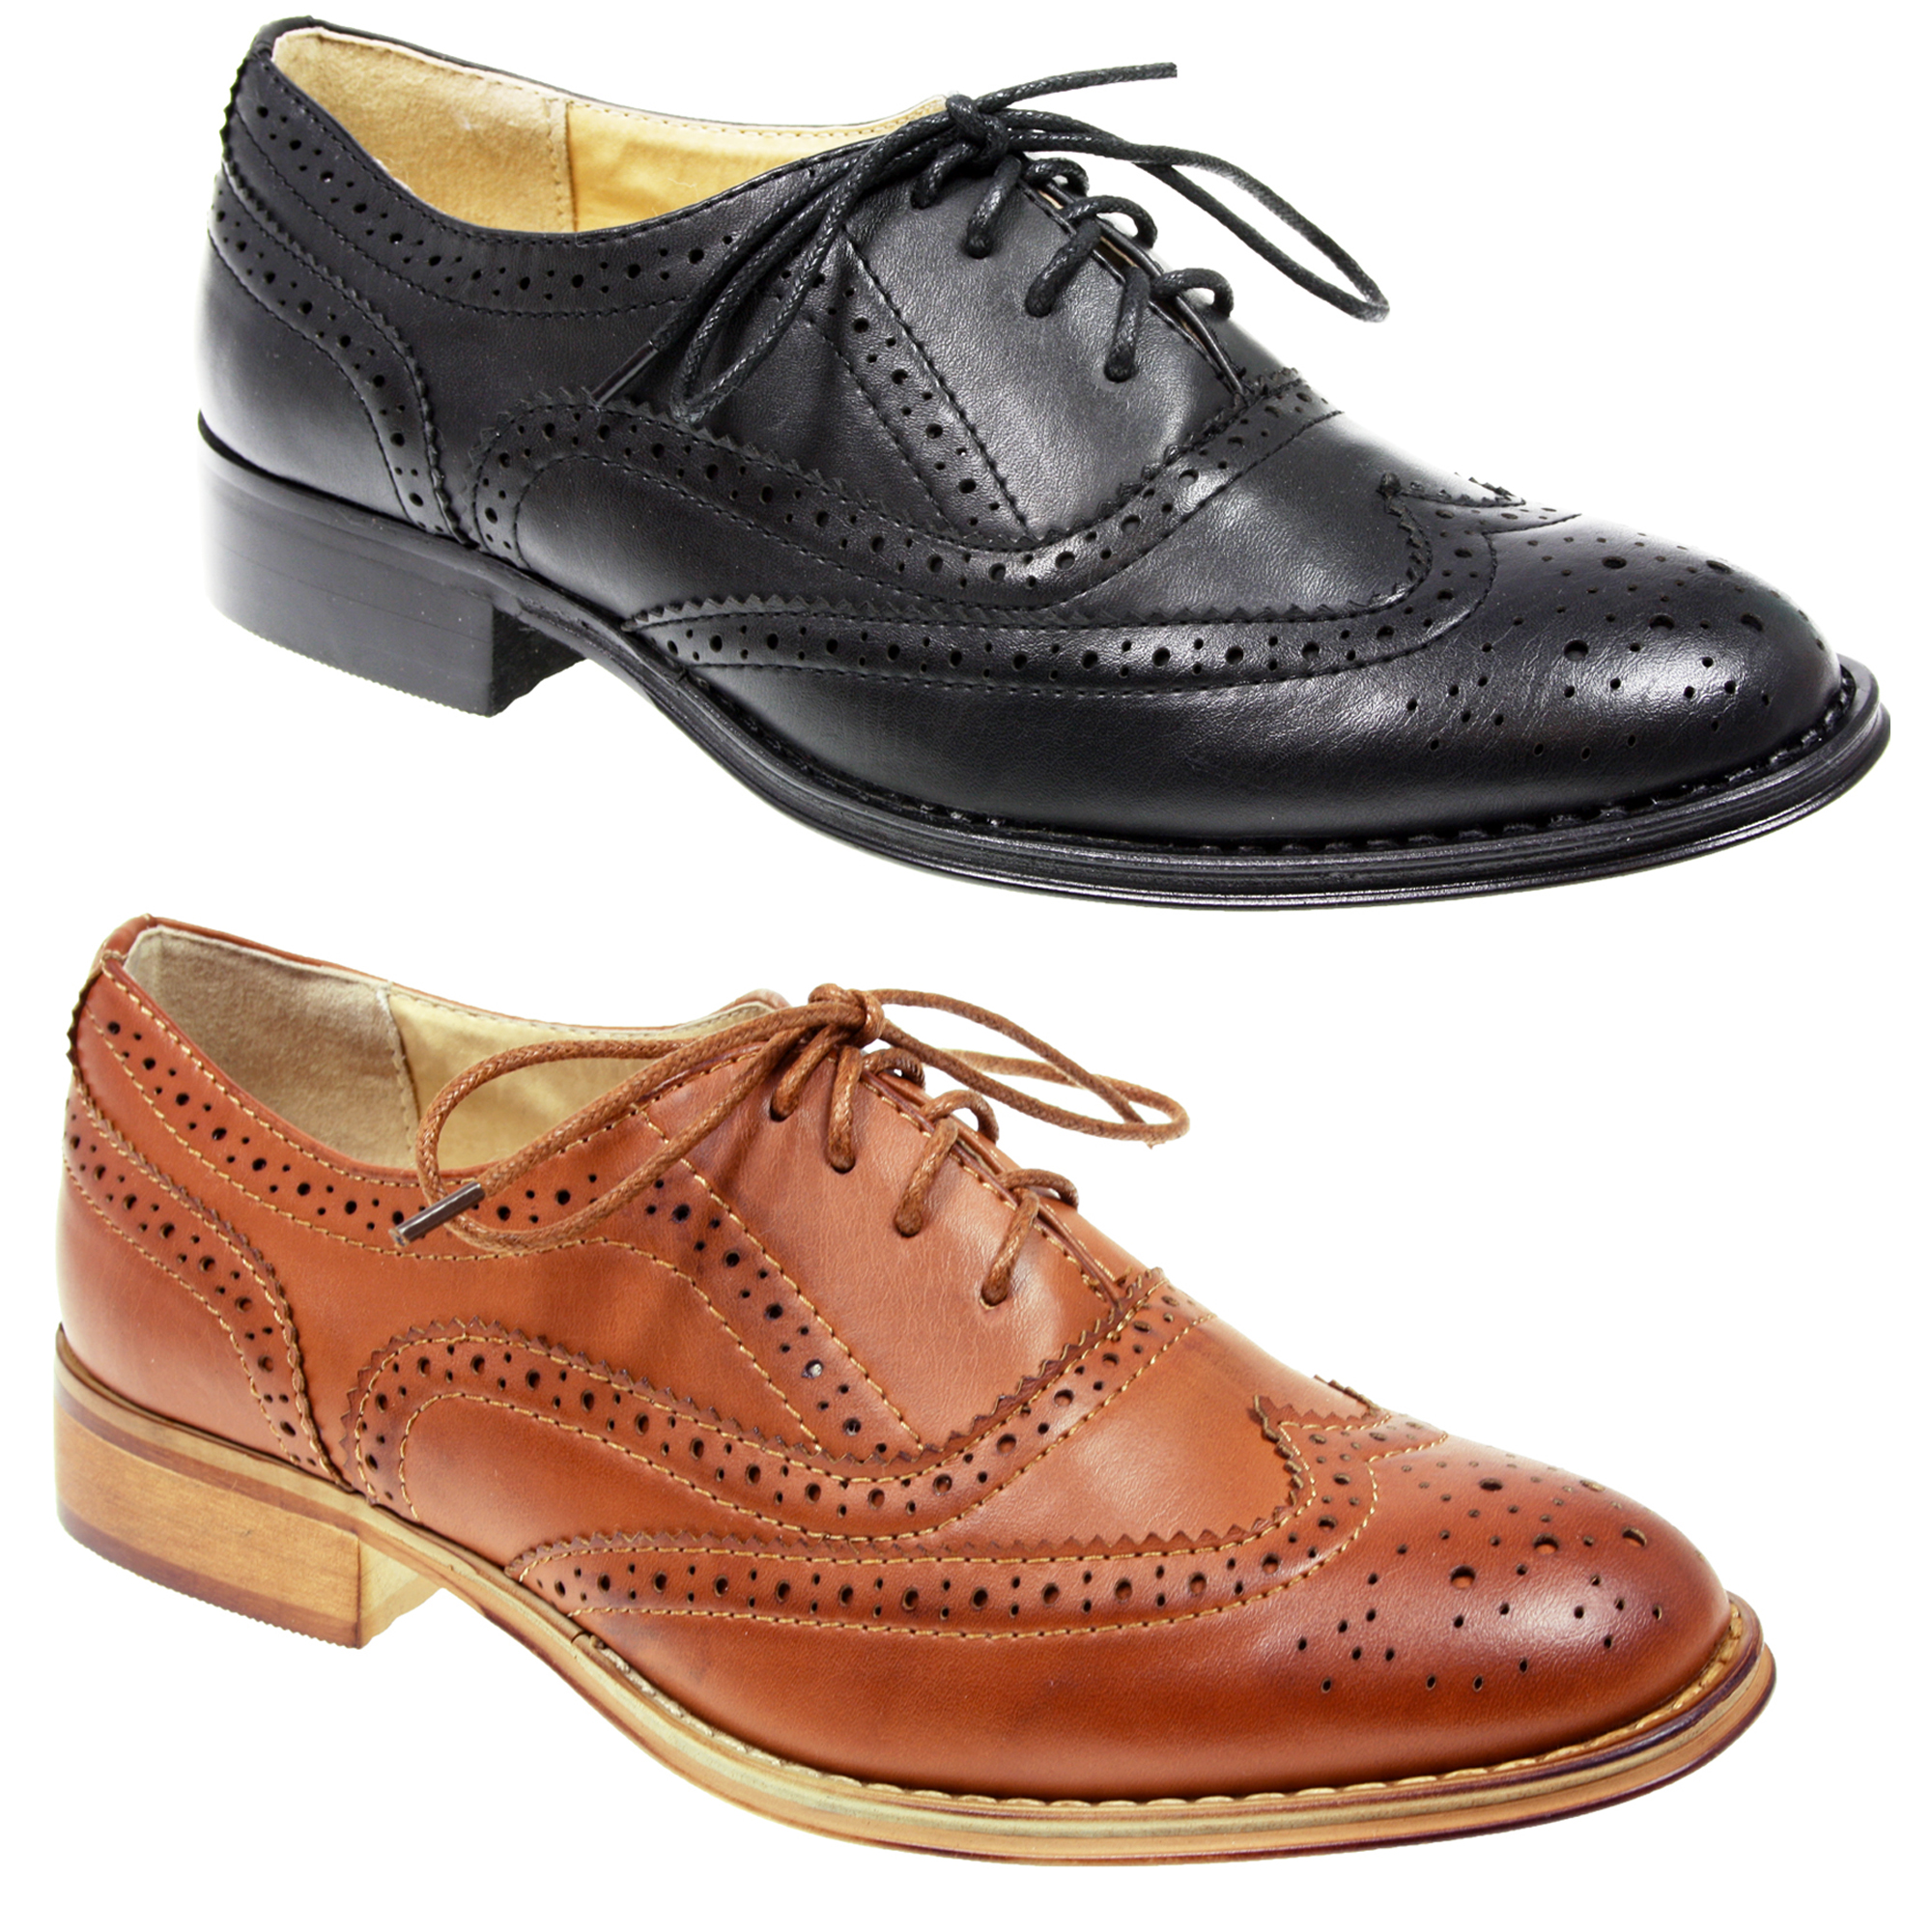 Shop eBay for great deals on Leather Lace Up Flats & Oxfords for Women. You'll find new or used products in Leather Lace Up Flats & Oxfords for Women on eBay. Free shipping on selected items. Ladies Lace up Shoes Women Genuine Leather Oxford Flats Wing Tip Brogue Shoes YT. $ Was: Previous Price $ DANSKO Shoes Women's Size 7 (